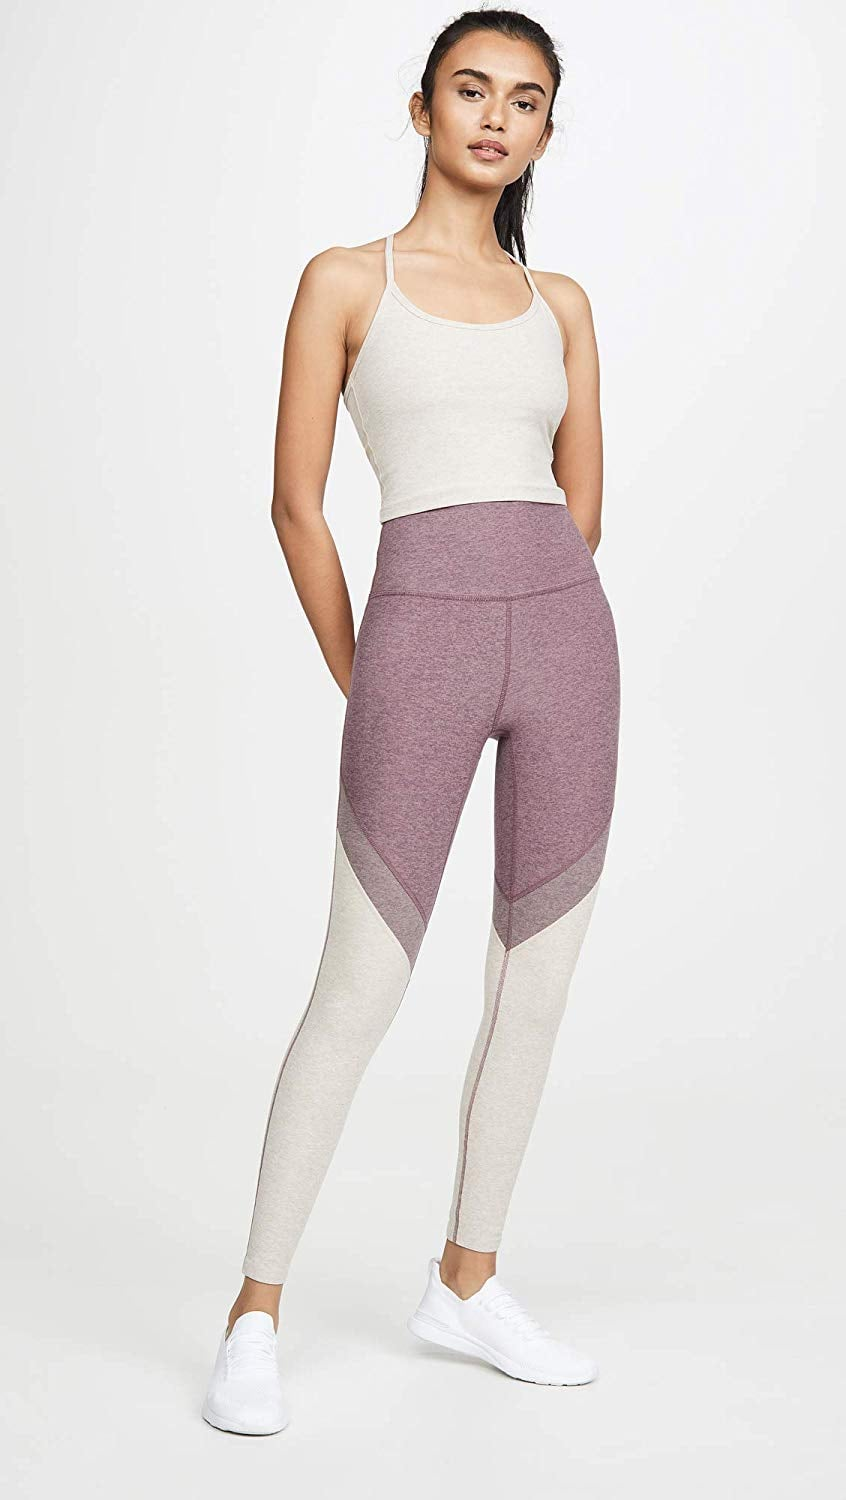 Beyond Yoga Spacedye Day One High Waisted Long Leggings We Live In Our Yoga Pants Particularly These 10 Pairs You Can Find On Amazon Popsugar Fitness Photo 2